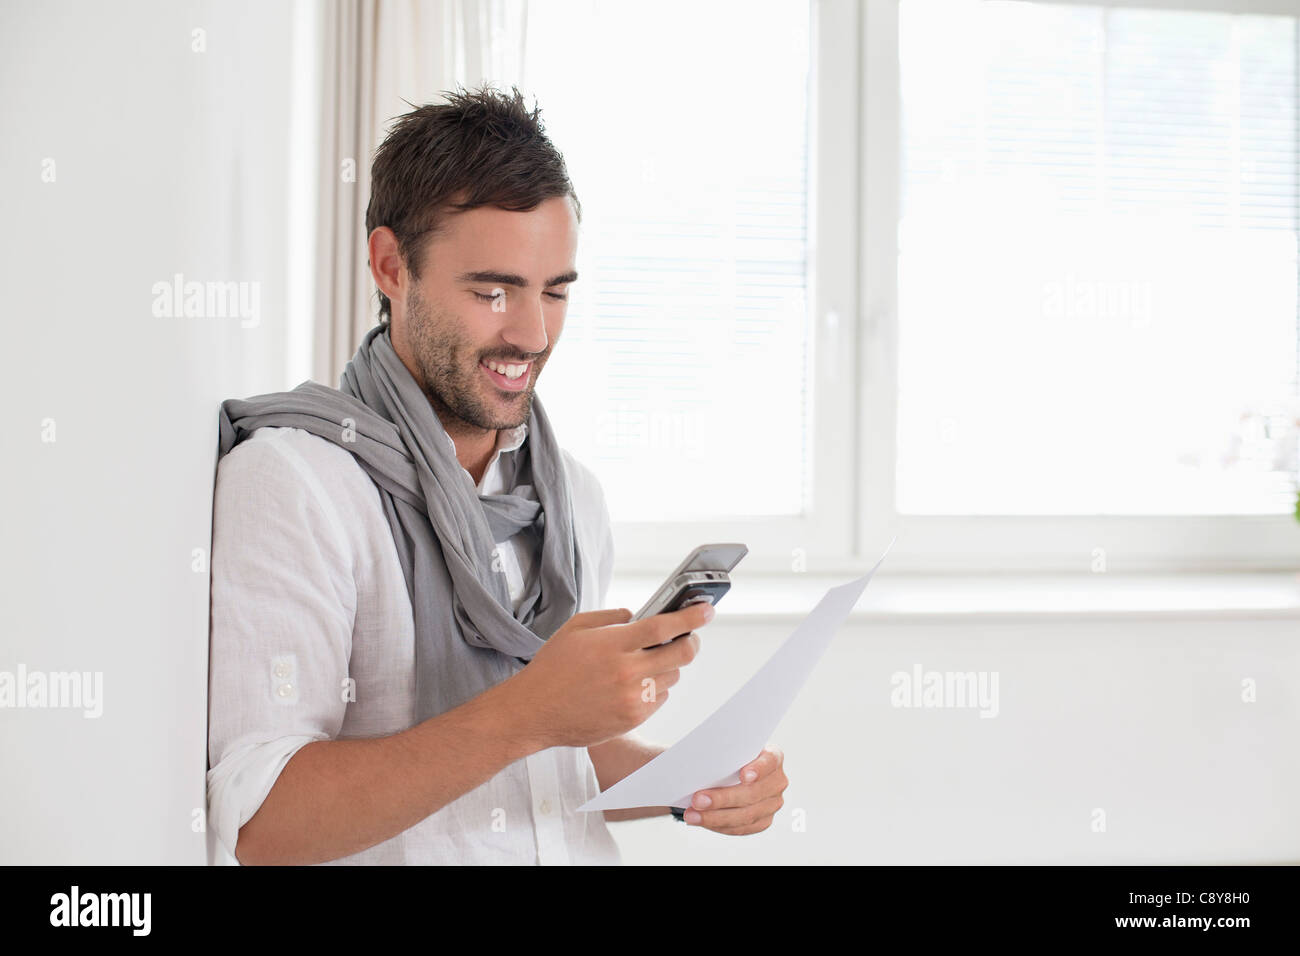 portrait of young man in empty room with mobile phone - Stock Image